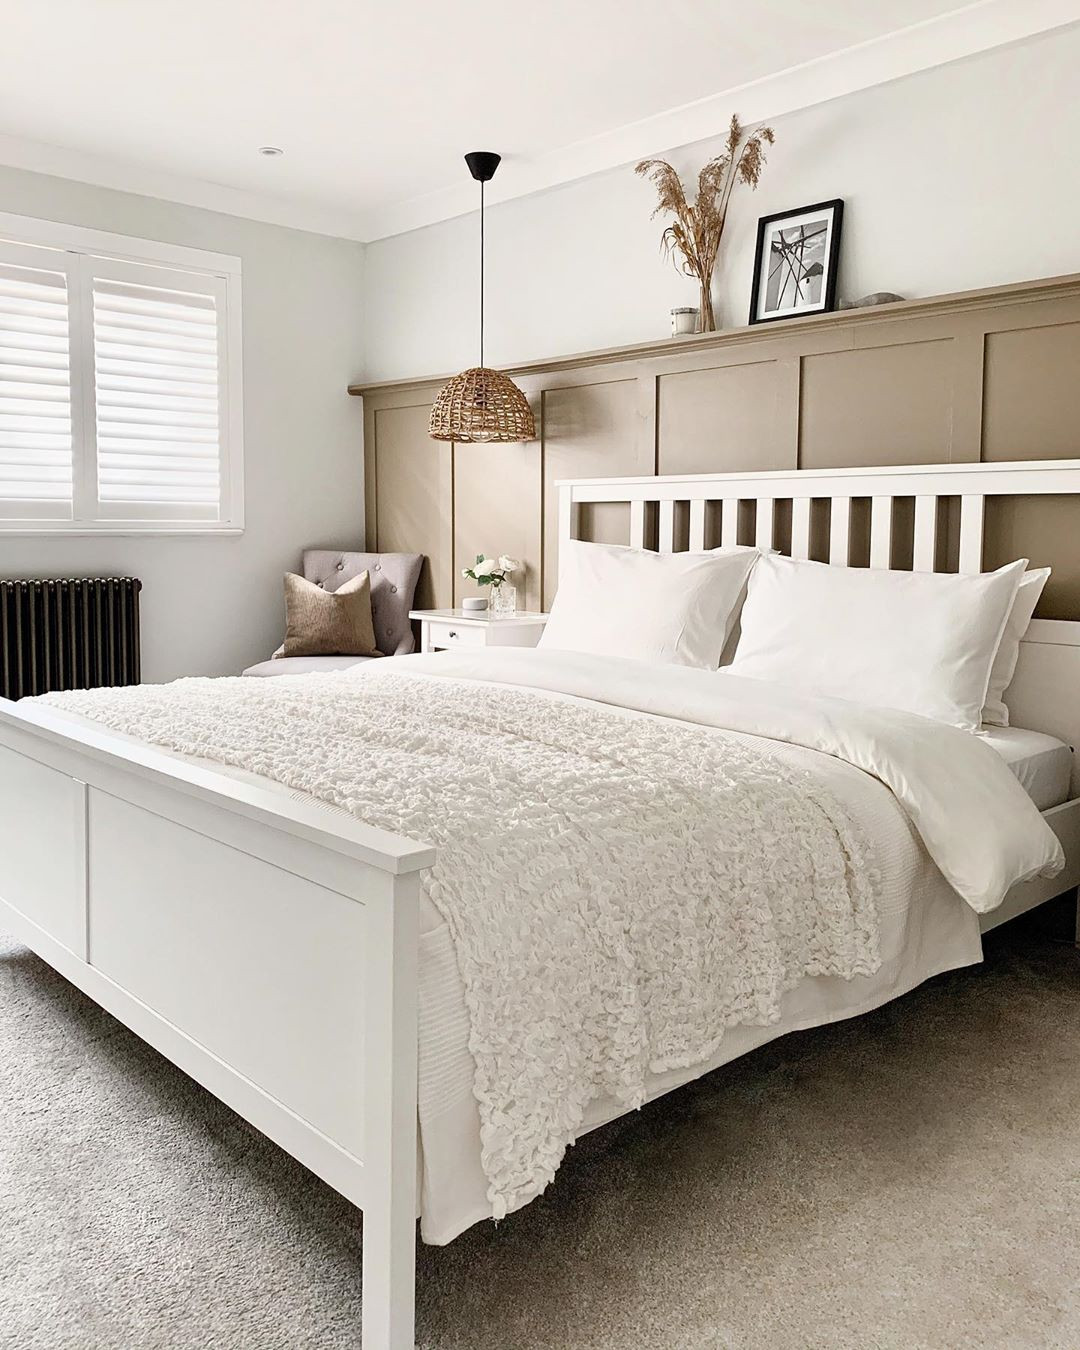 50 Decor Ideas to Transform Your Master Bedroom Into a Haven